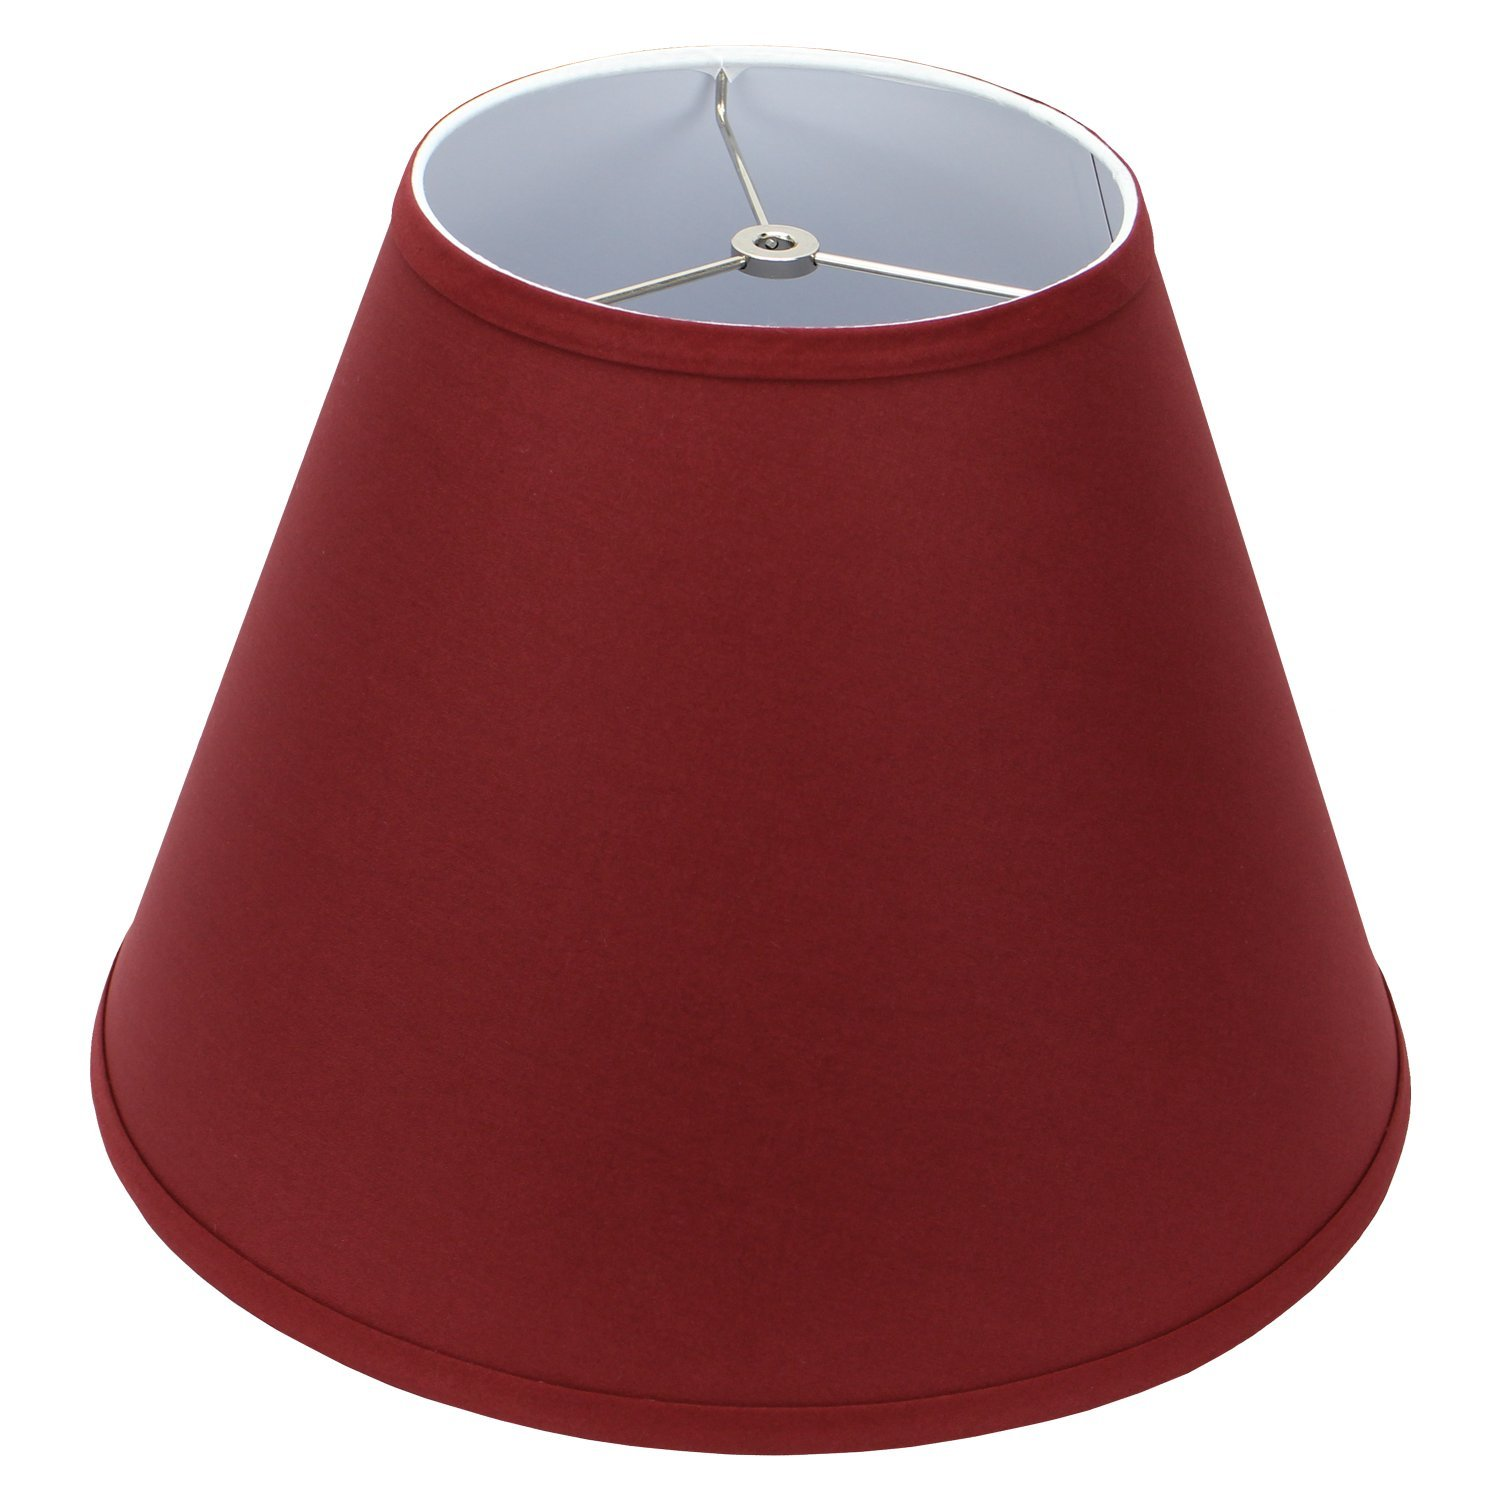 FenchelShades.com Lampshade 8'' Top Diameter x 16'' Bottom Diameter x 12'' Slant Height with Washer (Spider) Attachment for Lamps with a Harp (Brick)